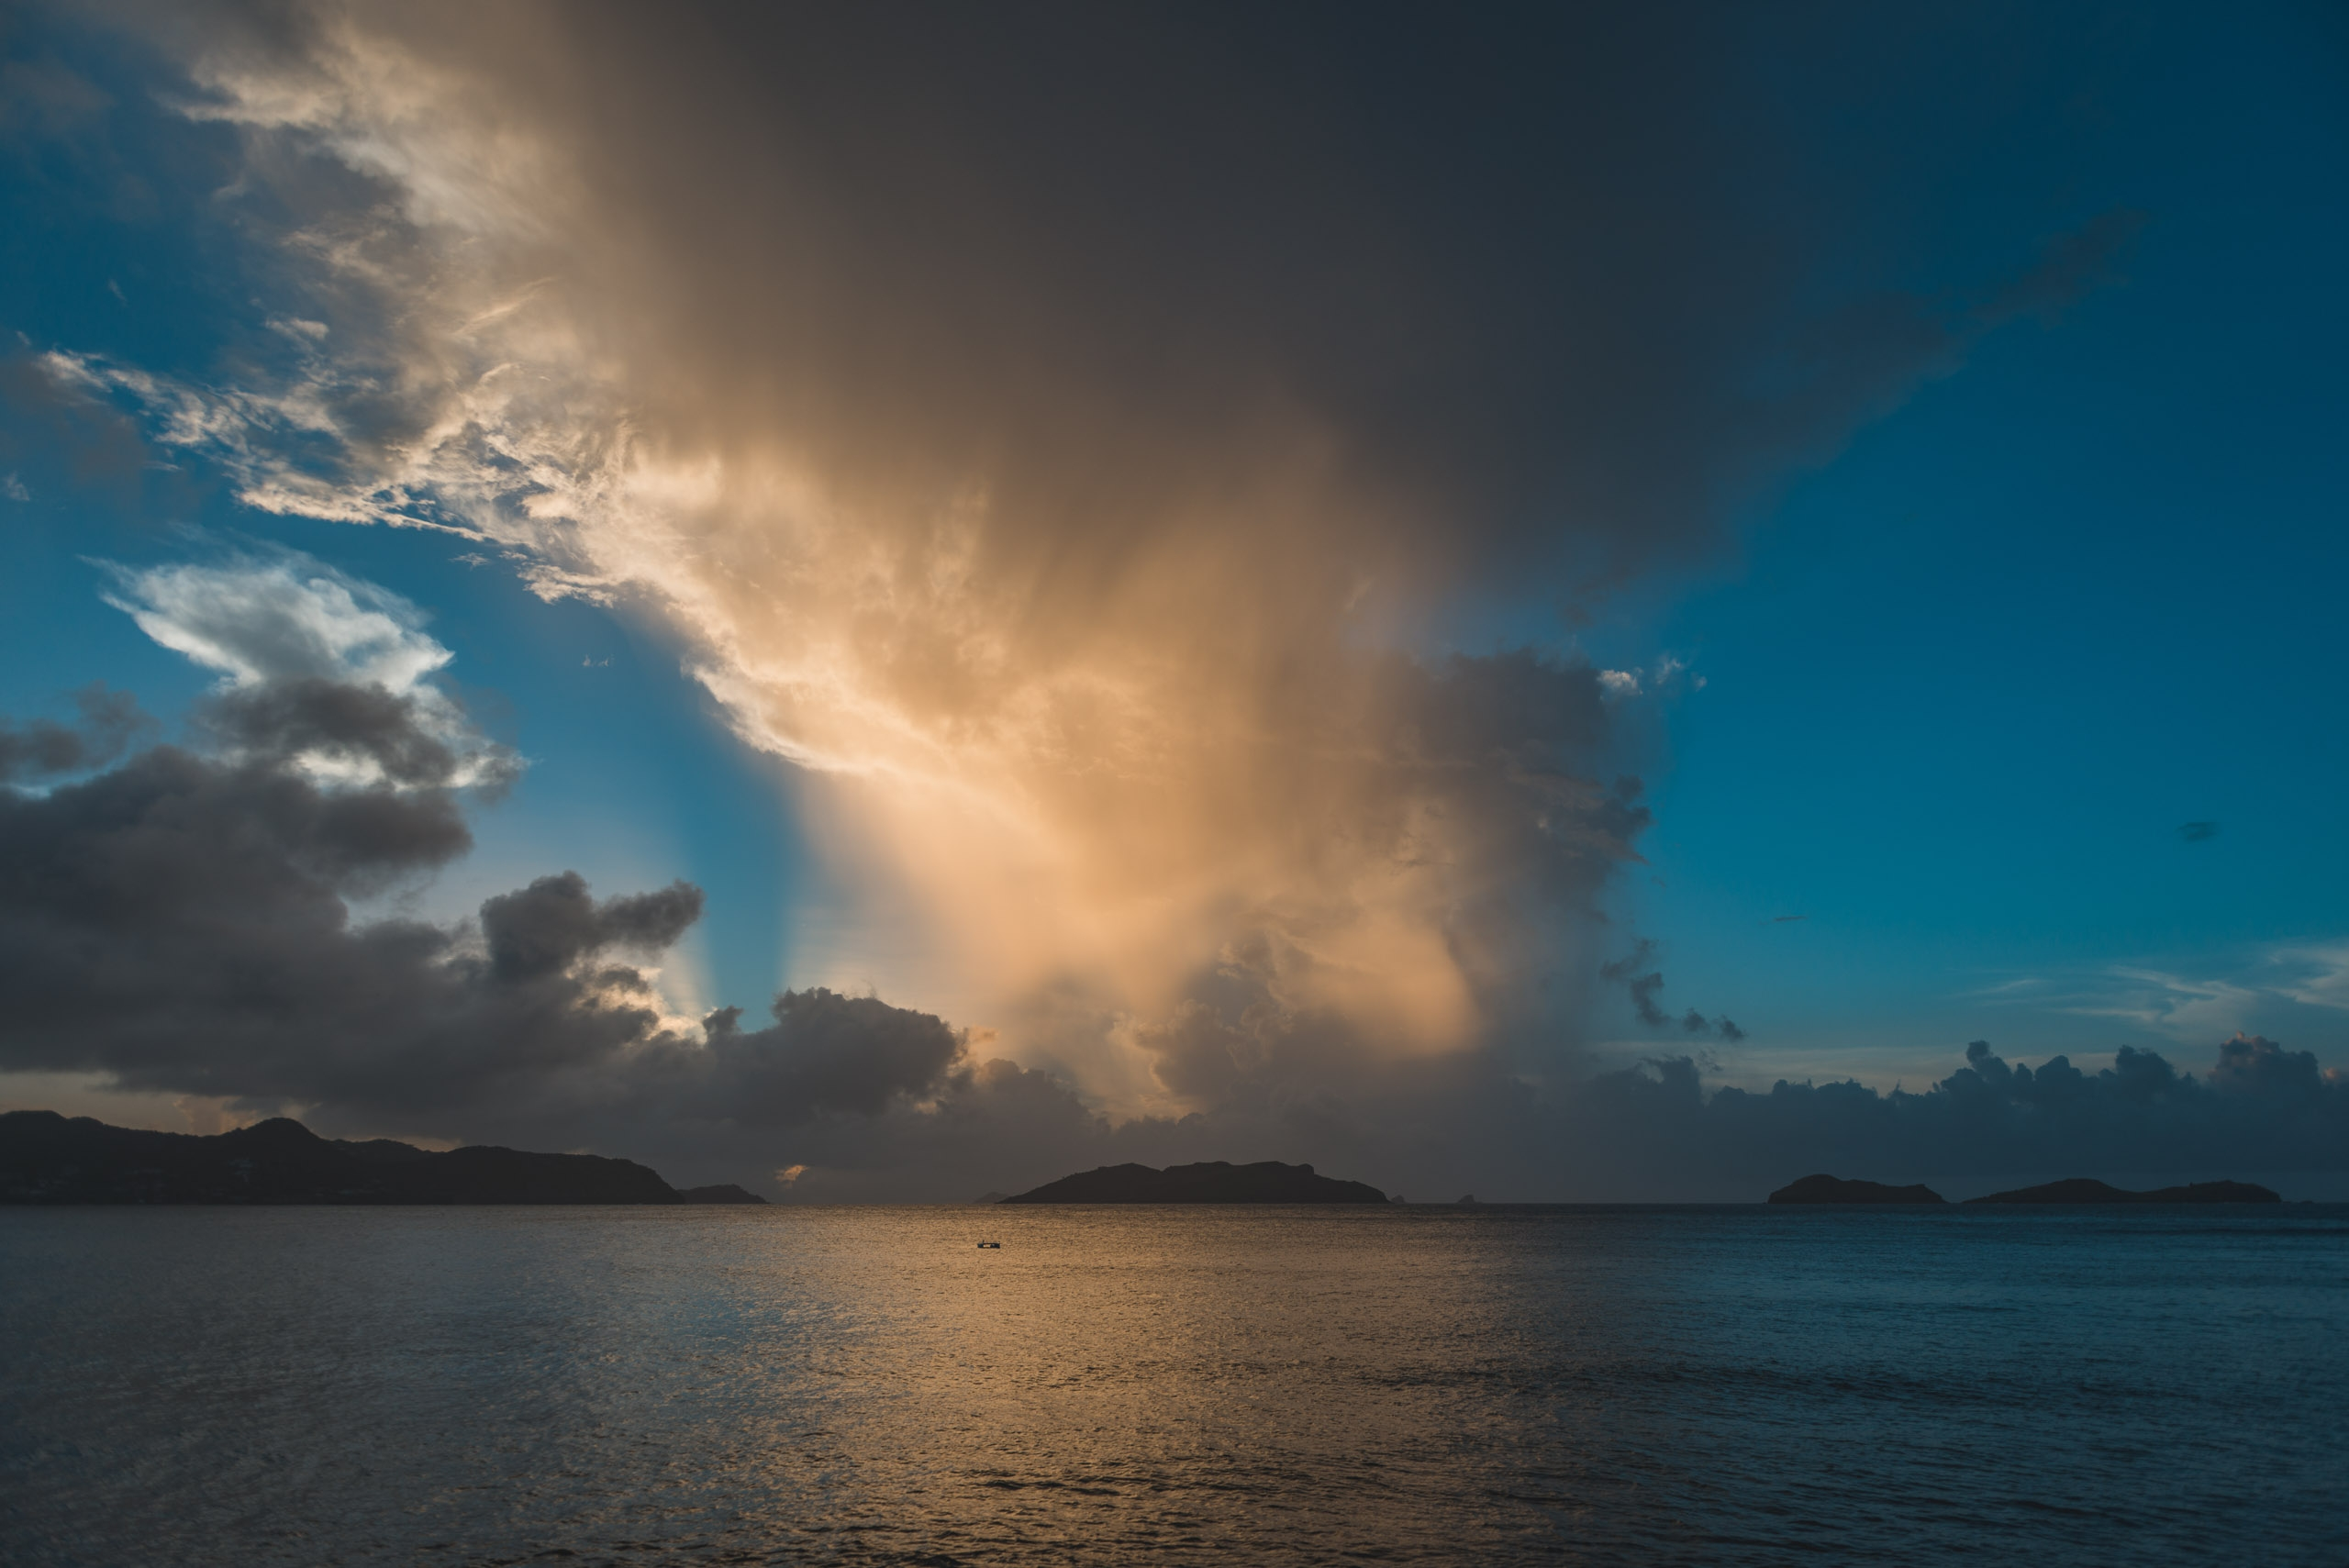 A Stormy Sunset over St Bart